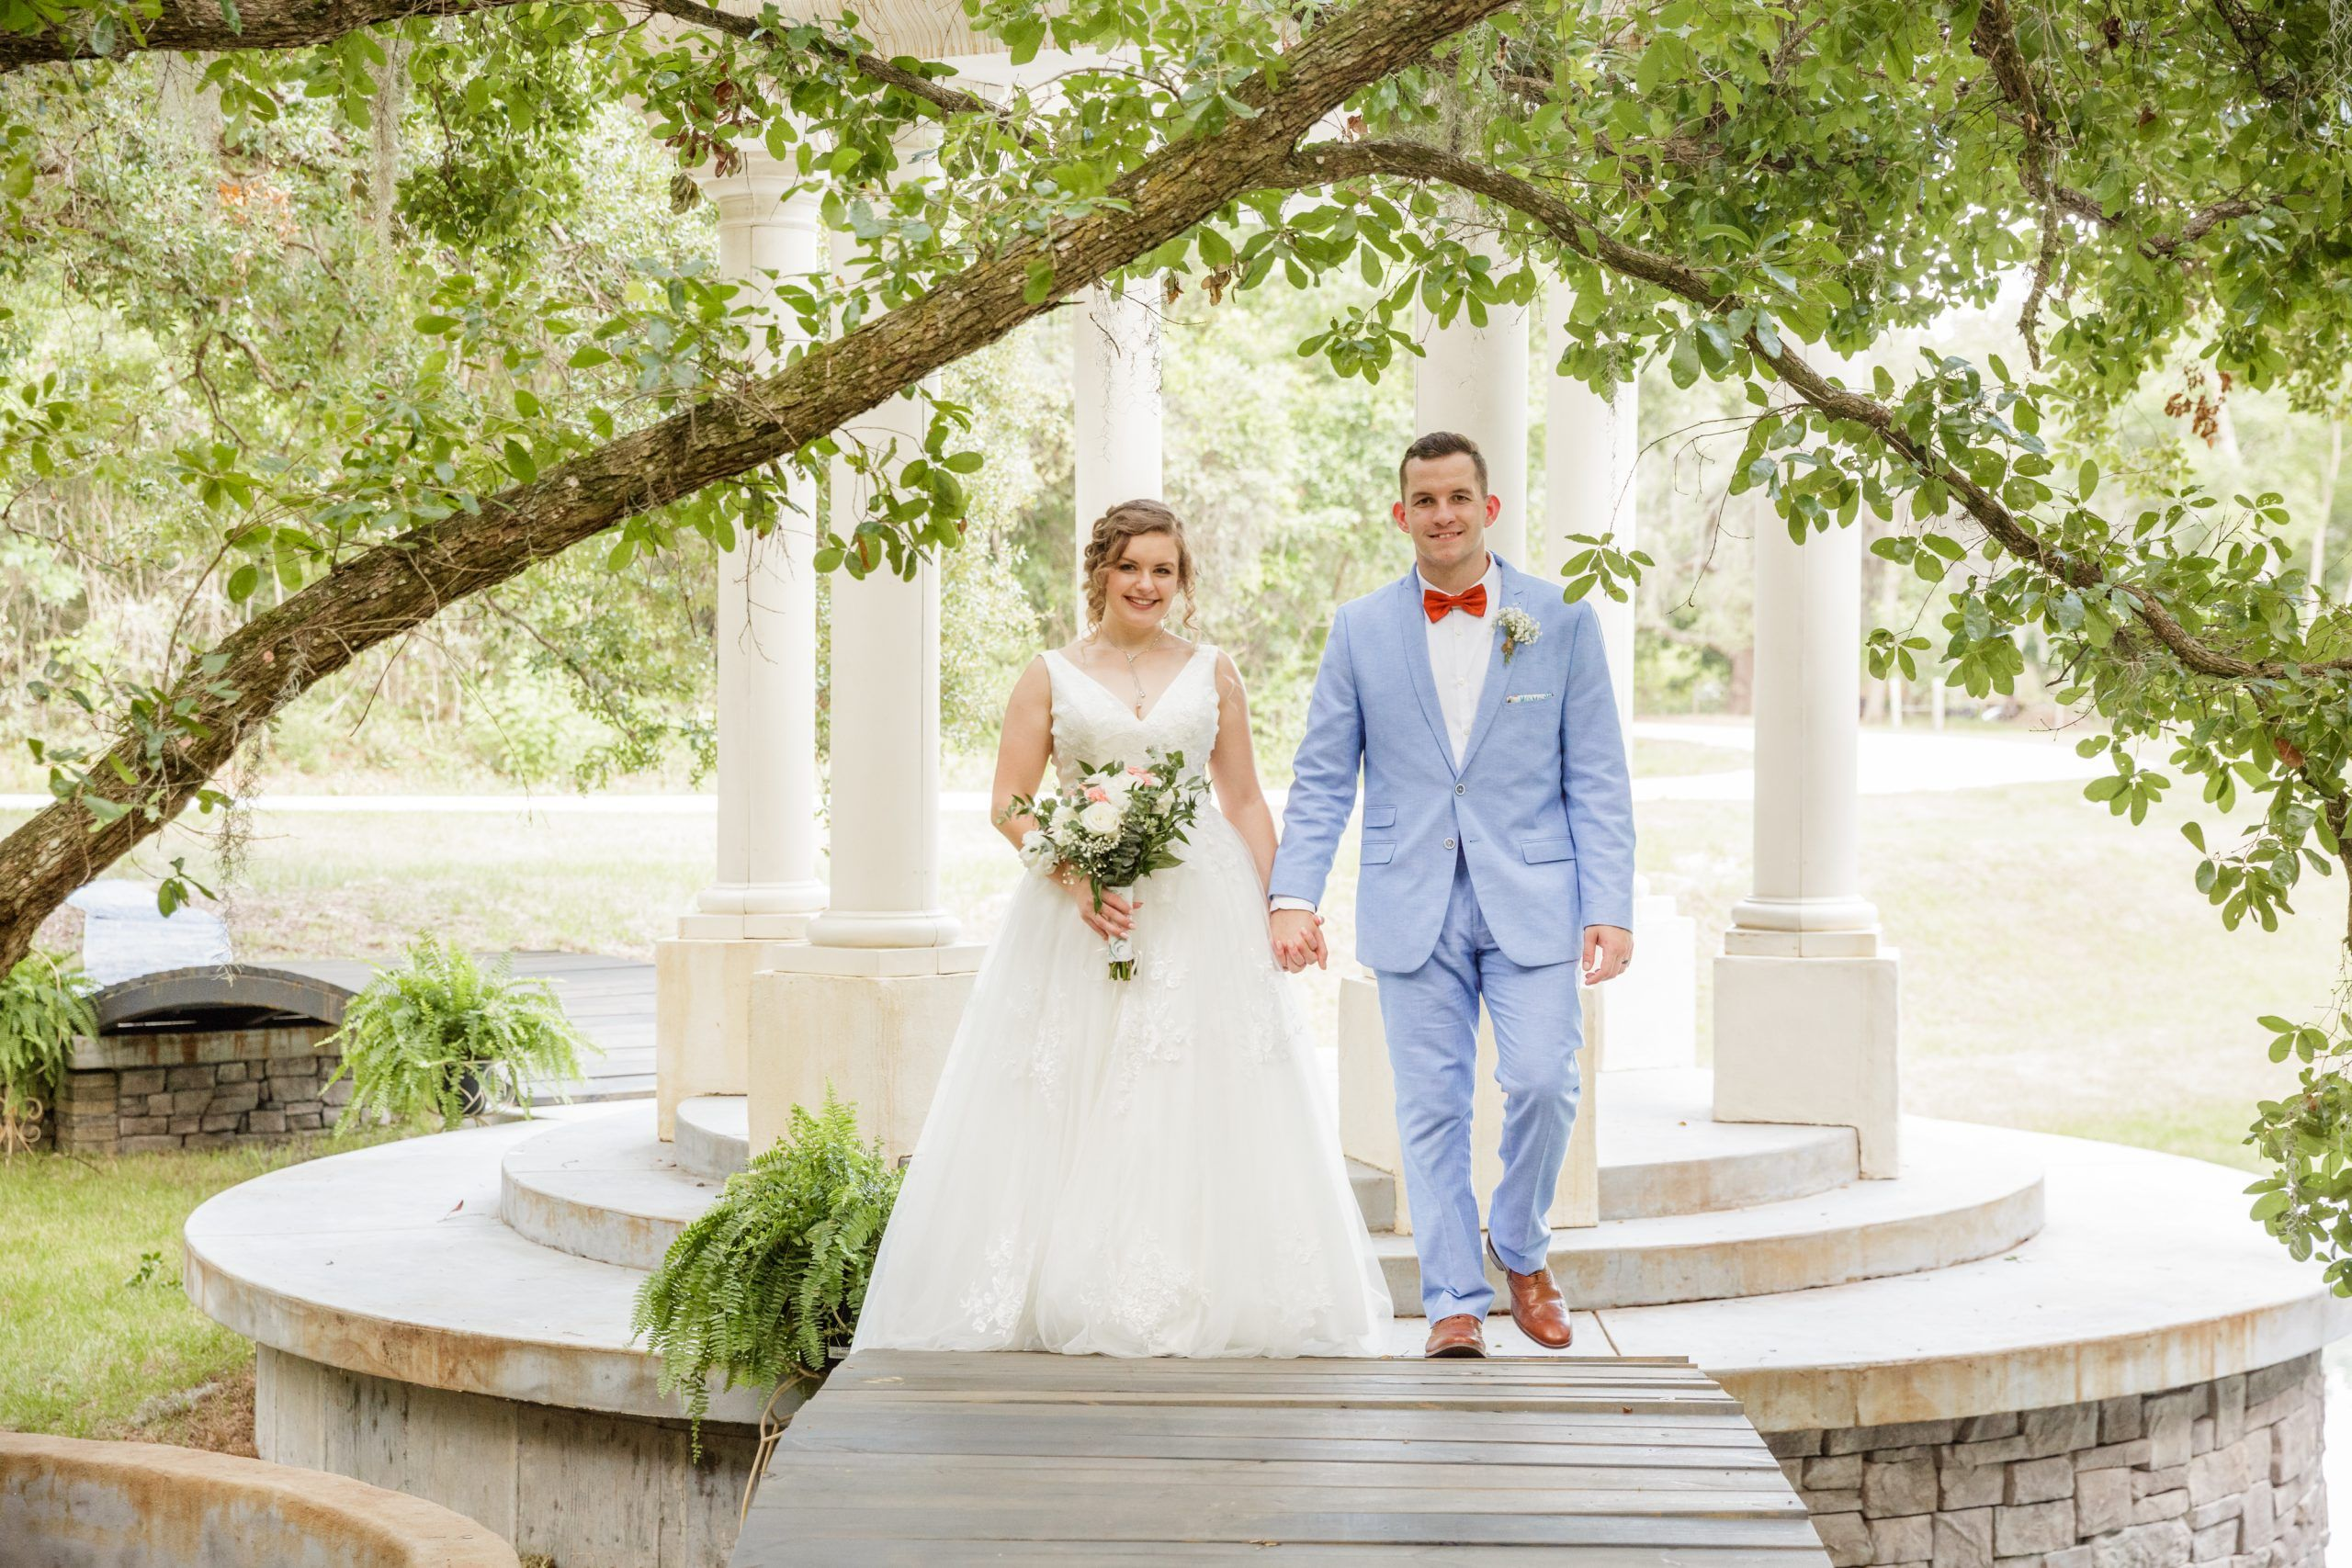 married under a tree at backyard wedding